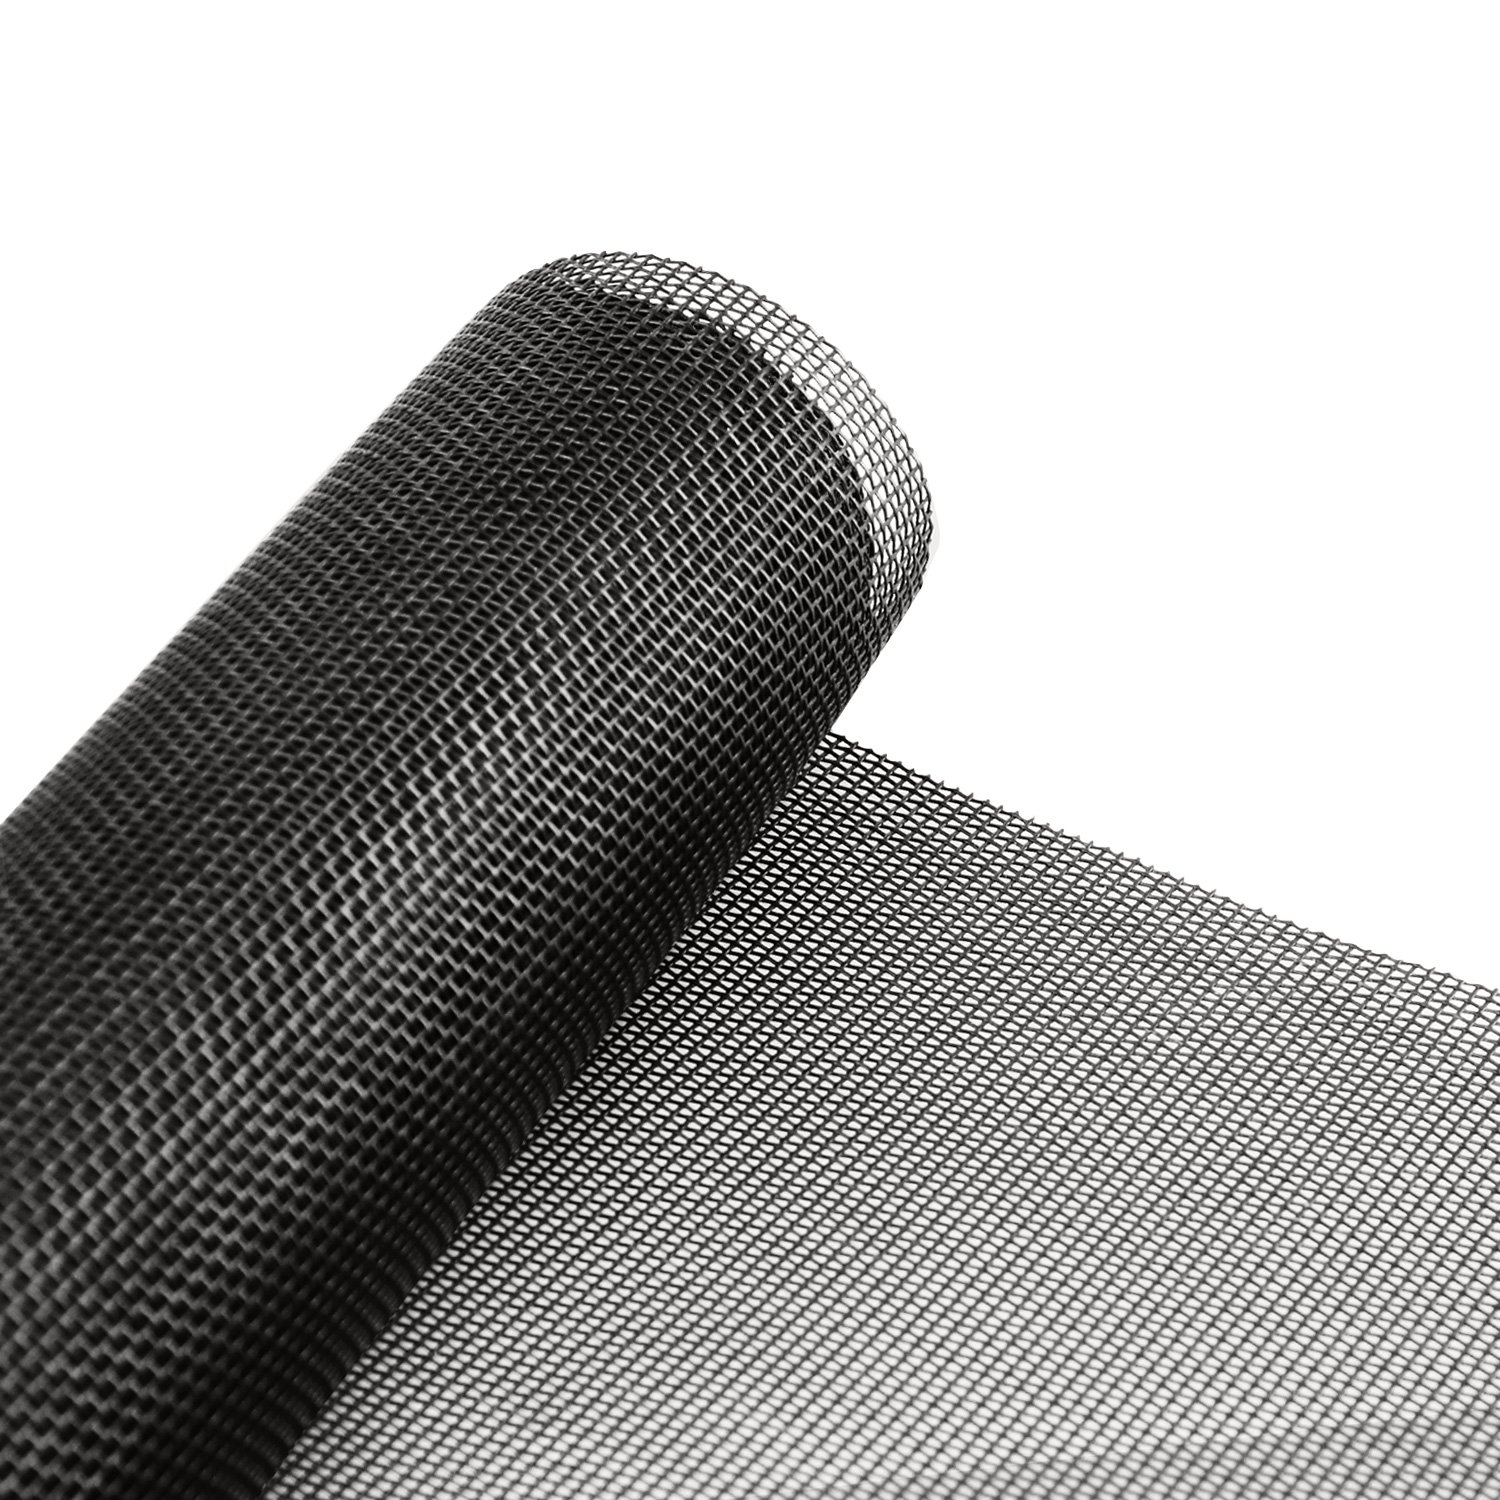 Screen Mesh Roll, Pet Resistant Screen Cat Dog Proof Screen Roll Pet Proof Prevent Tear Damage Wire Mesh Window Screen for Dogs Cats(35''W x 86''L)